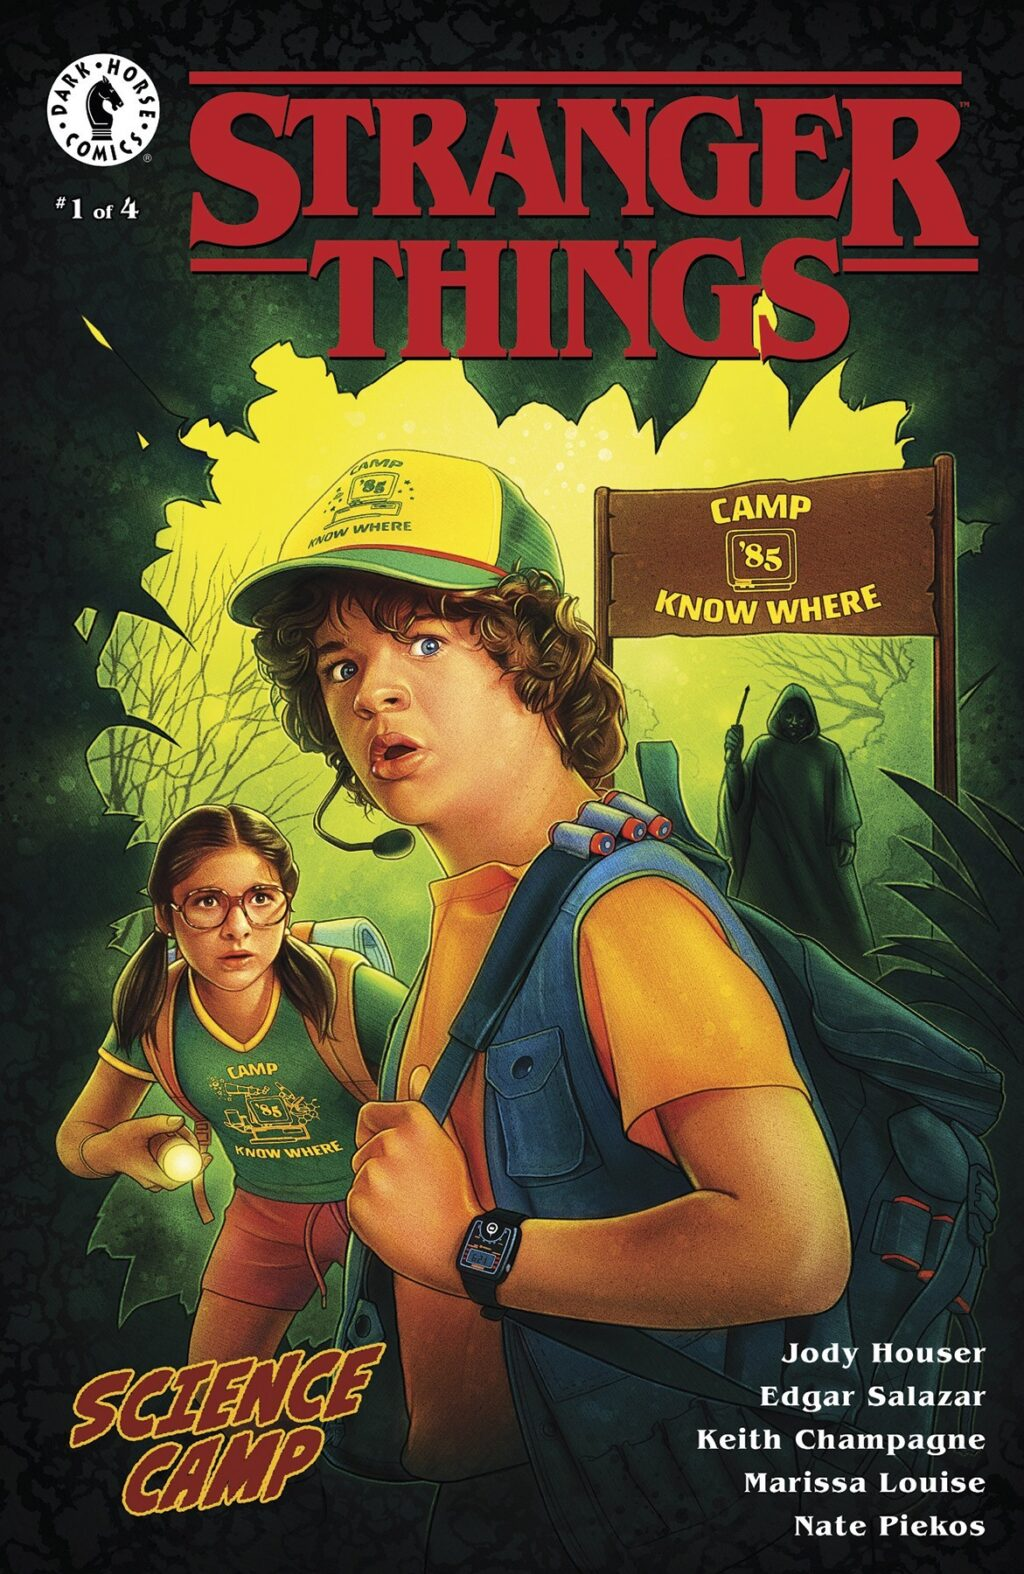 Stranger Things Science Camp 3 1024x1574 - STRANGER THINGS: SCIENCE CAMP Comic Miniseries Kicks Off This September